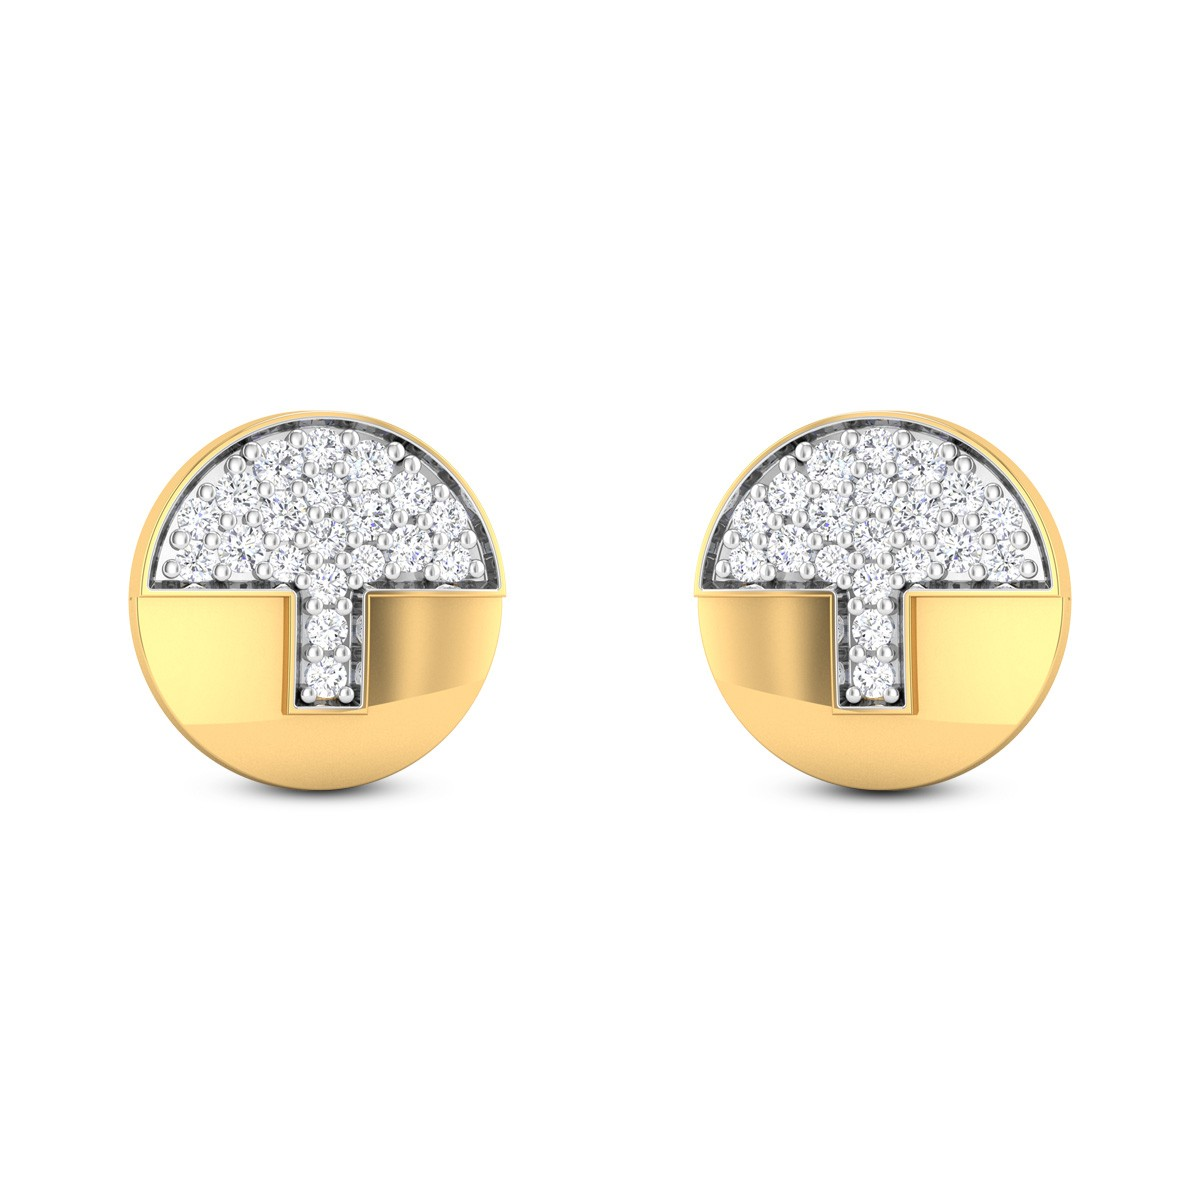 Maria Diamond Earrings